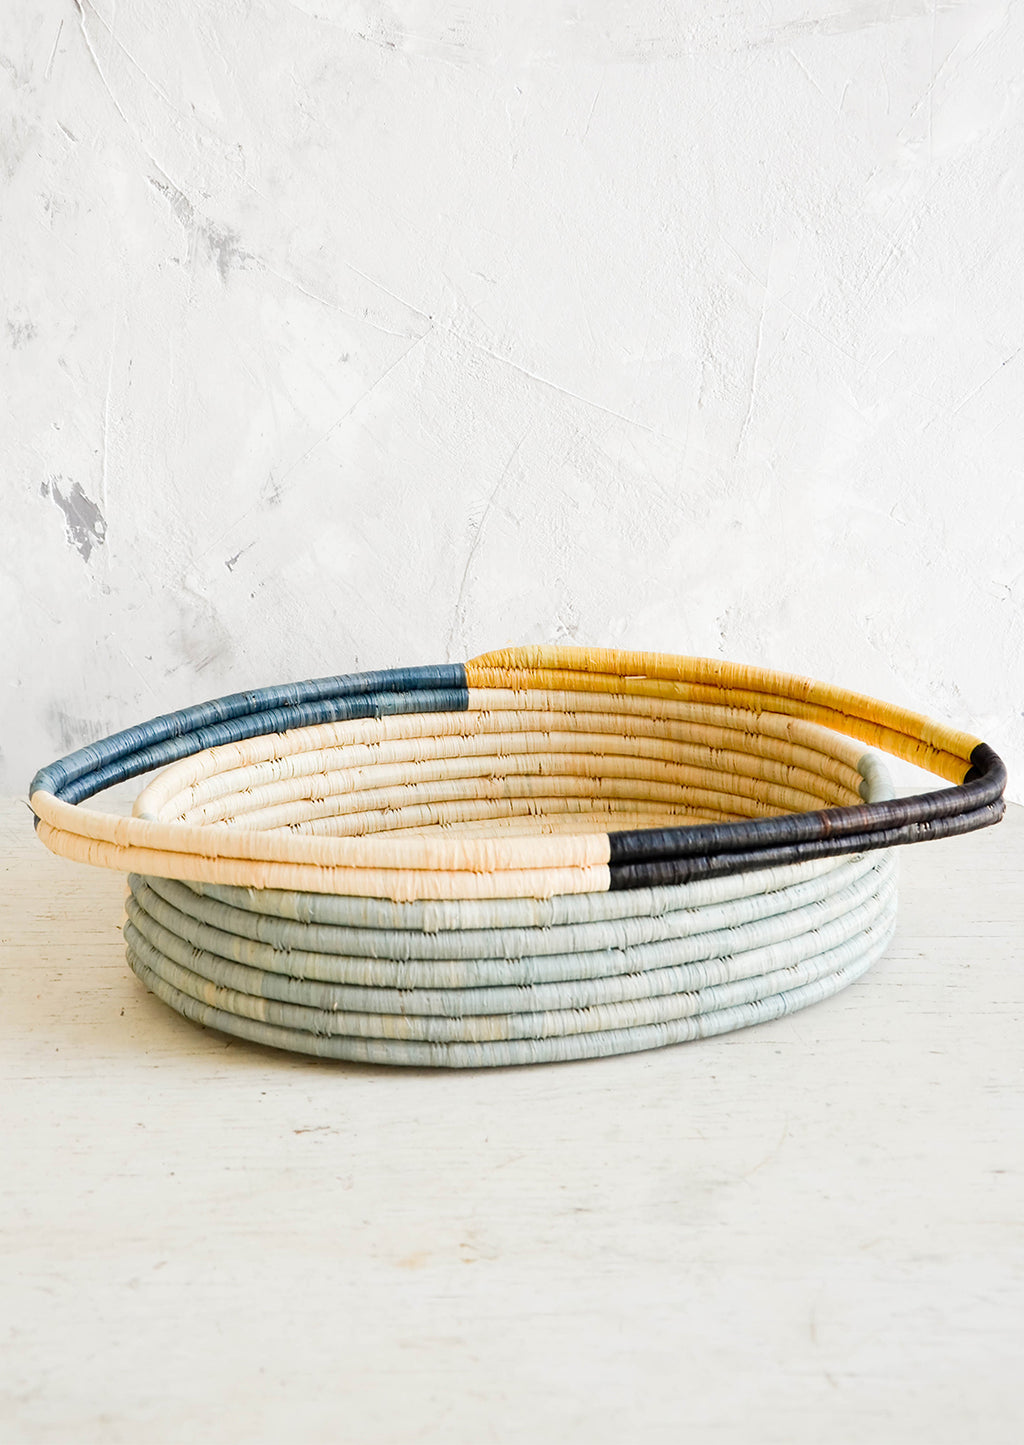 2: Oval bread basket in woven raffia with protruding handles at either side, sitting on a table.